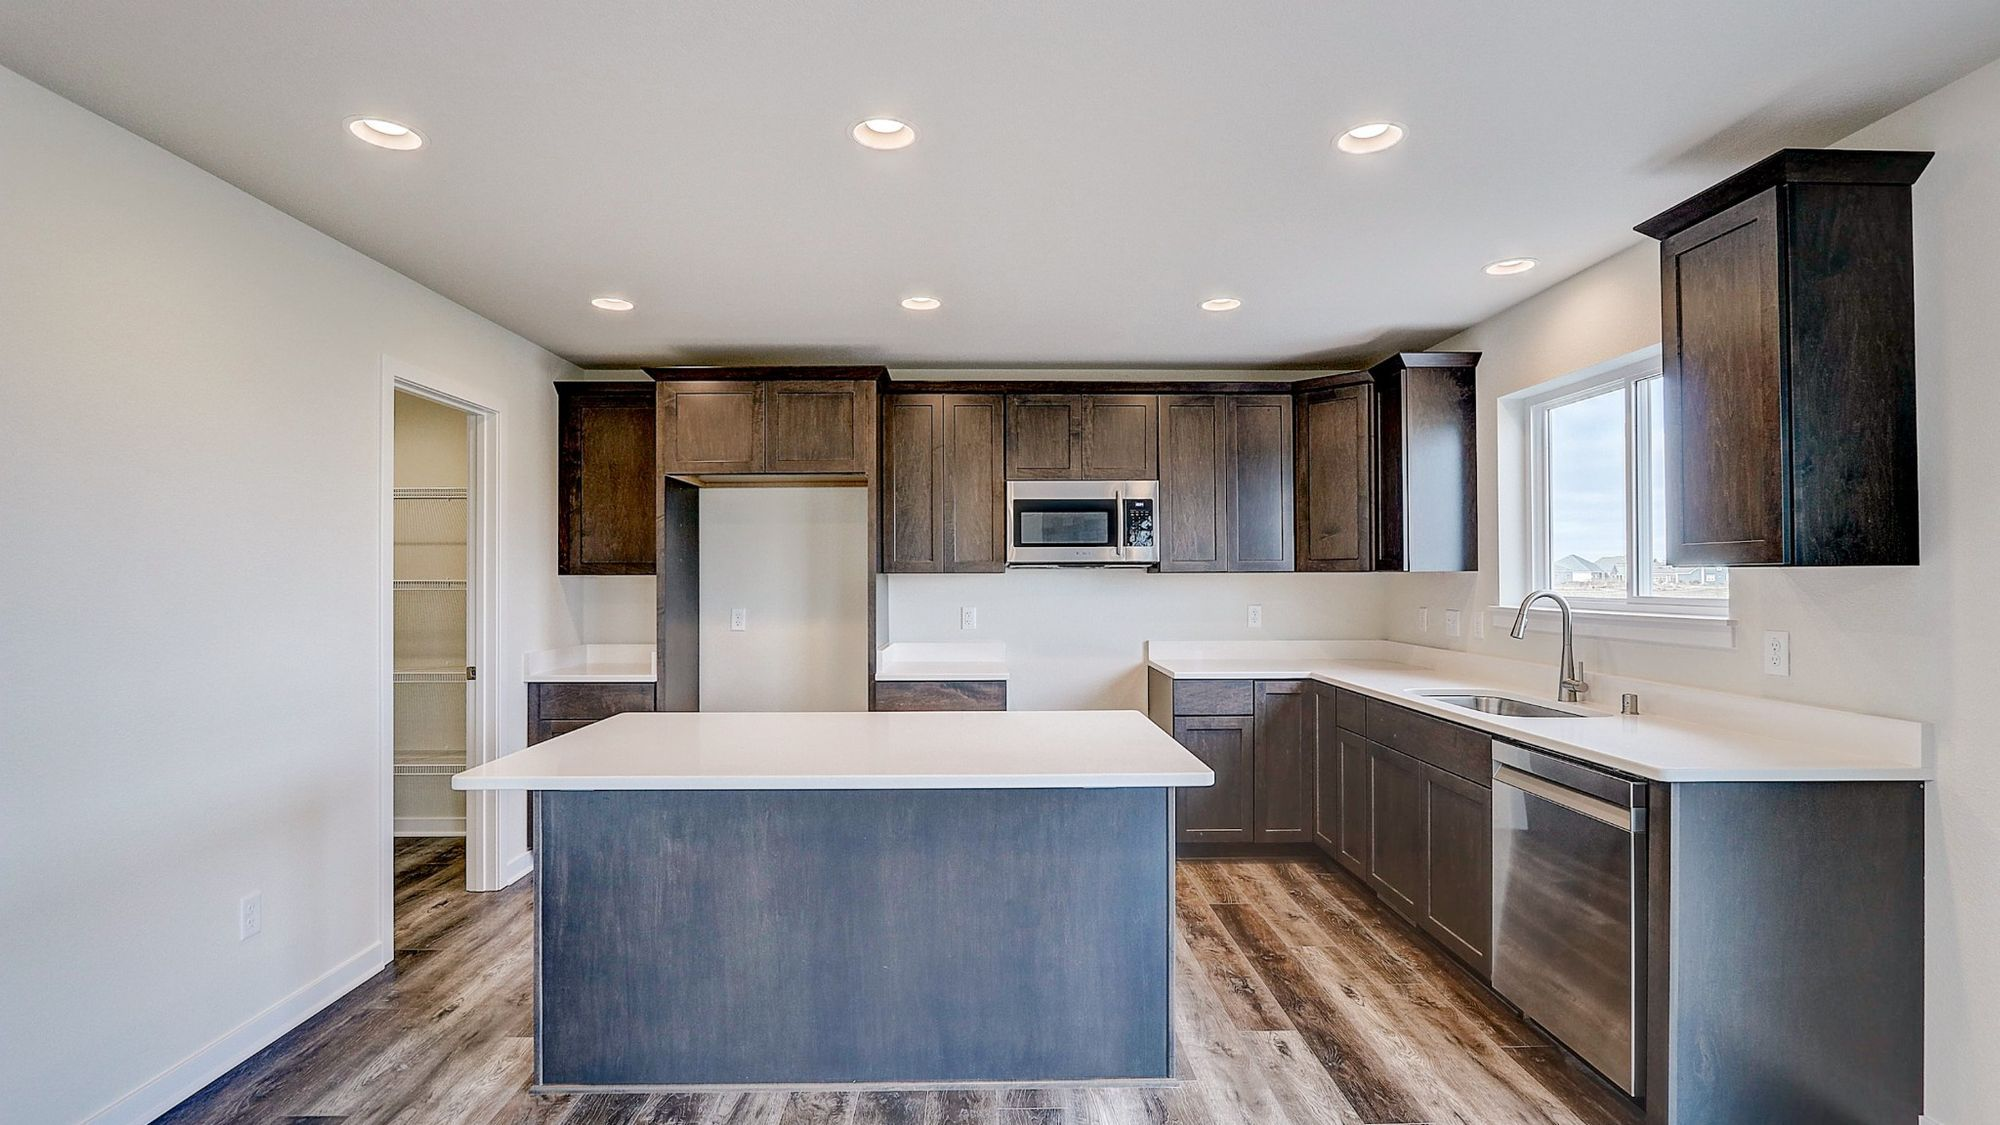 Kitchen featured in The Bridgeport By Harbor Homes in Washington-Fond du Lac, WI